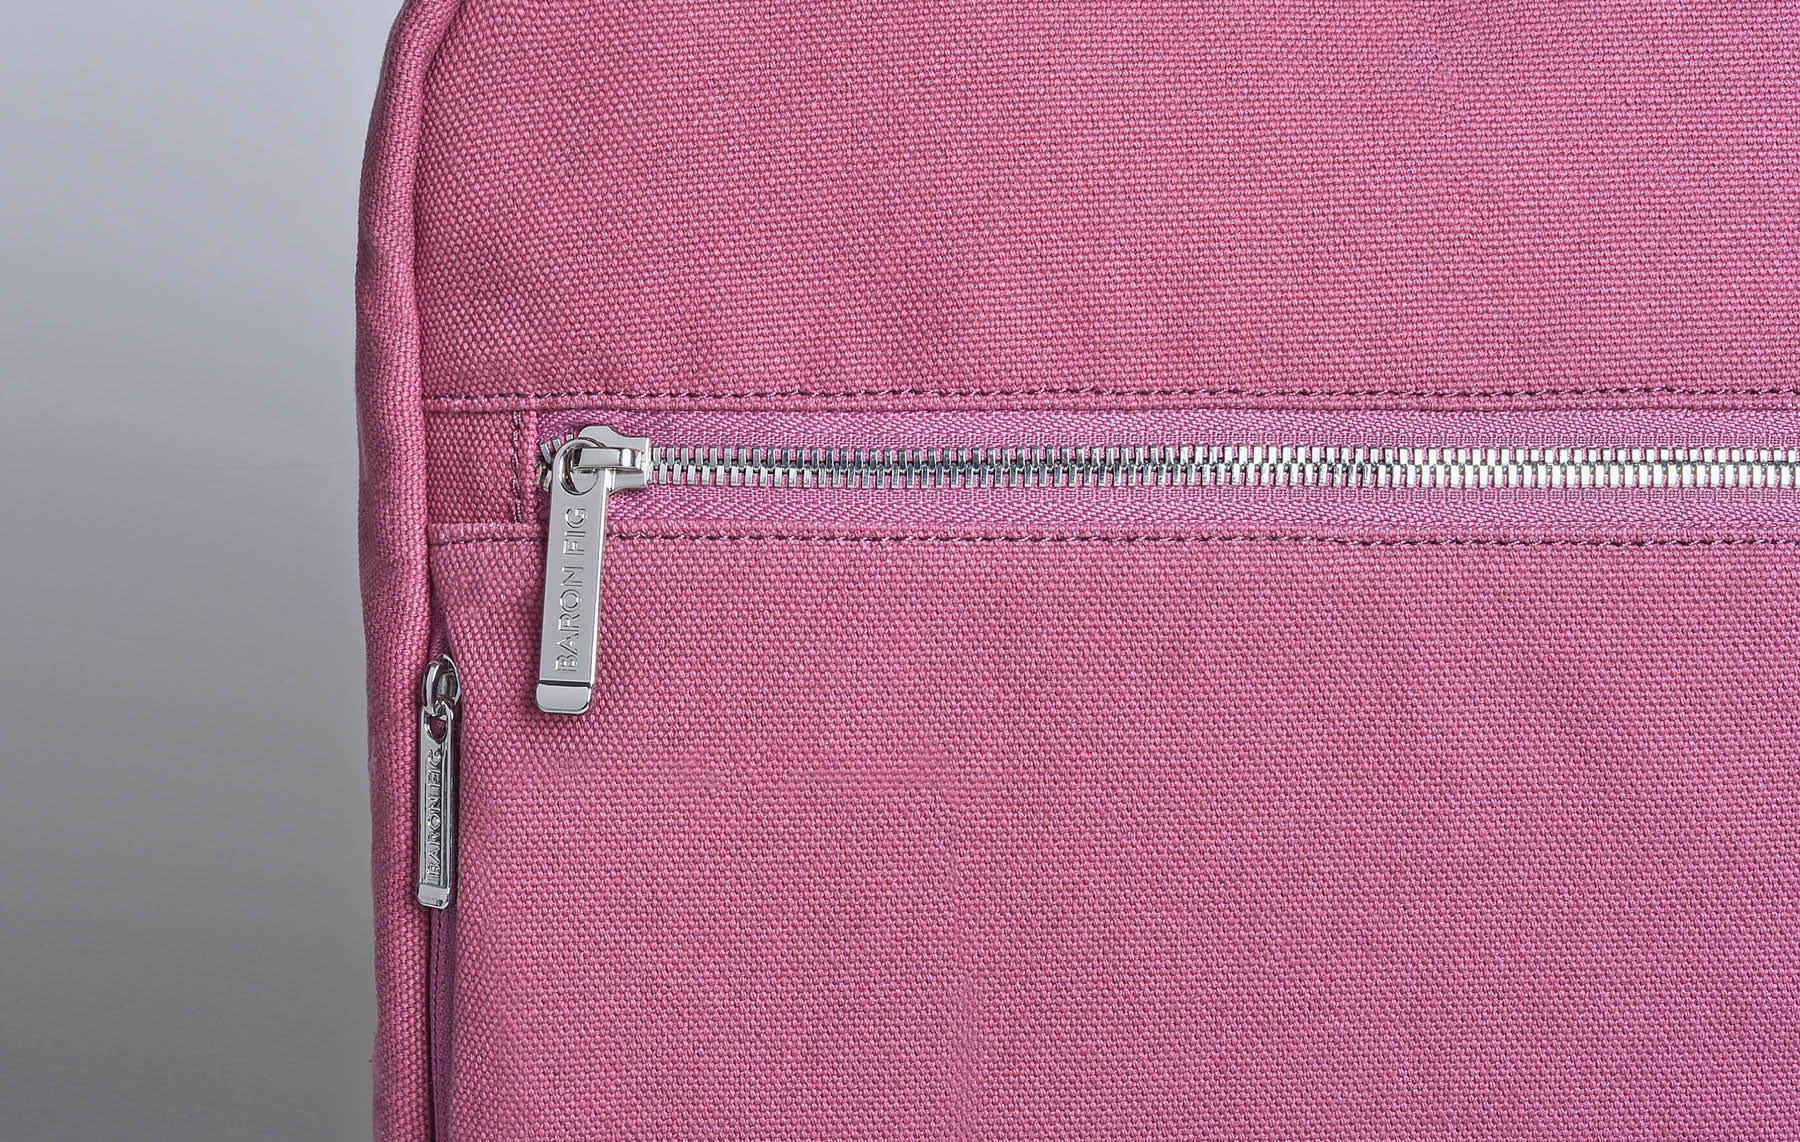 Close up of Slimline backpack hardware